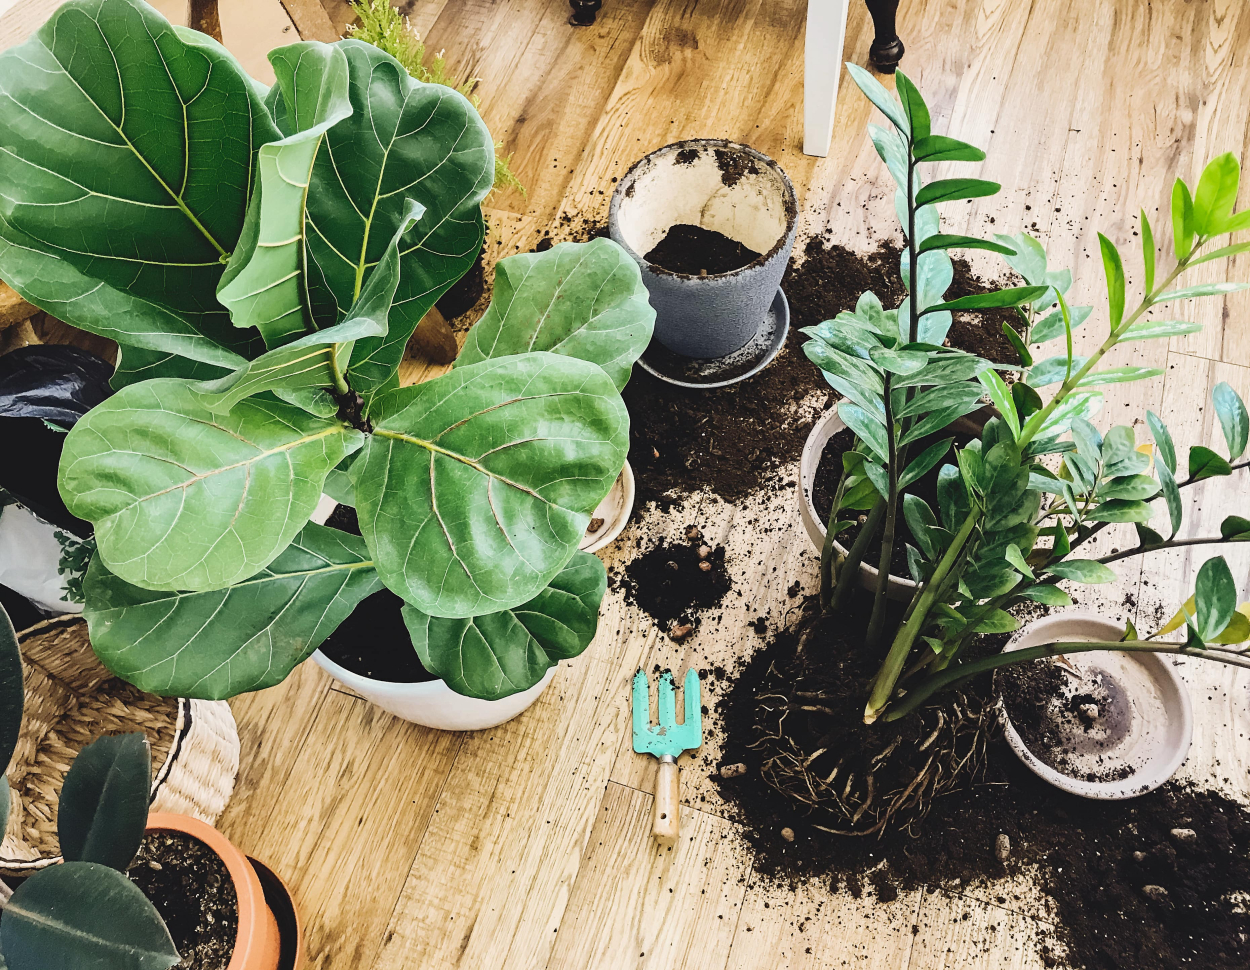 Disadvantages of real indoor plants